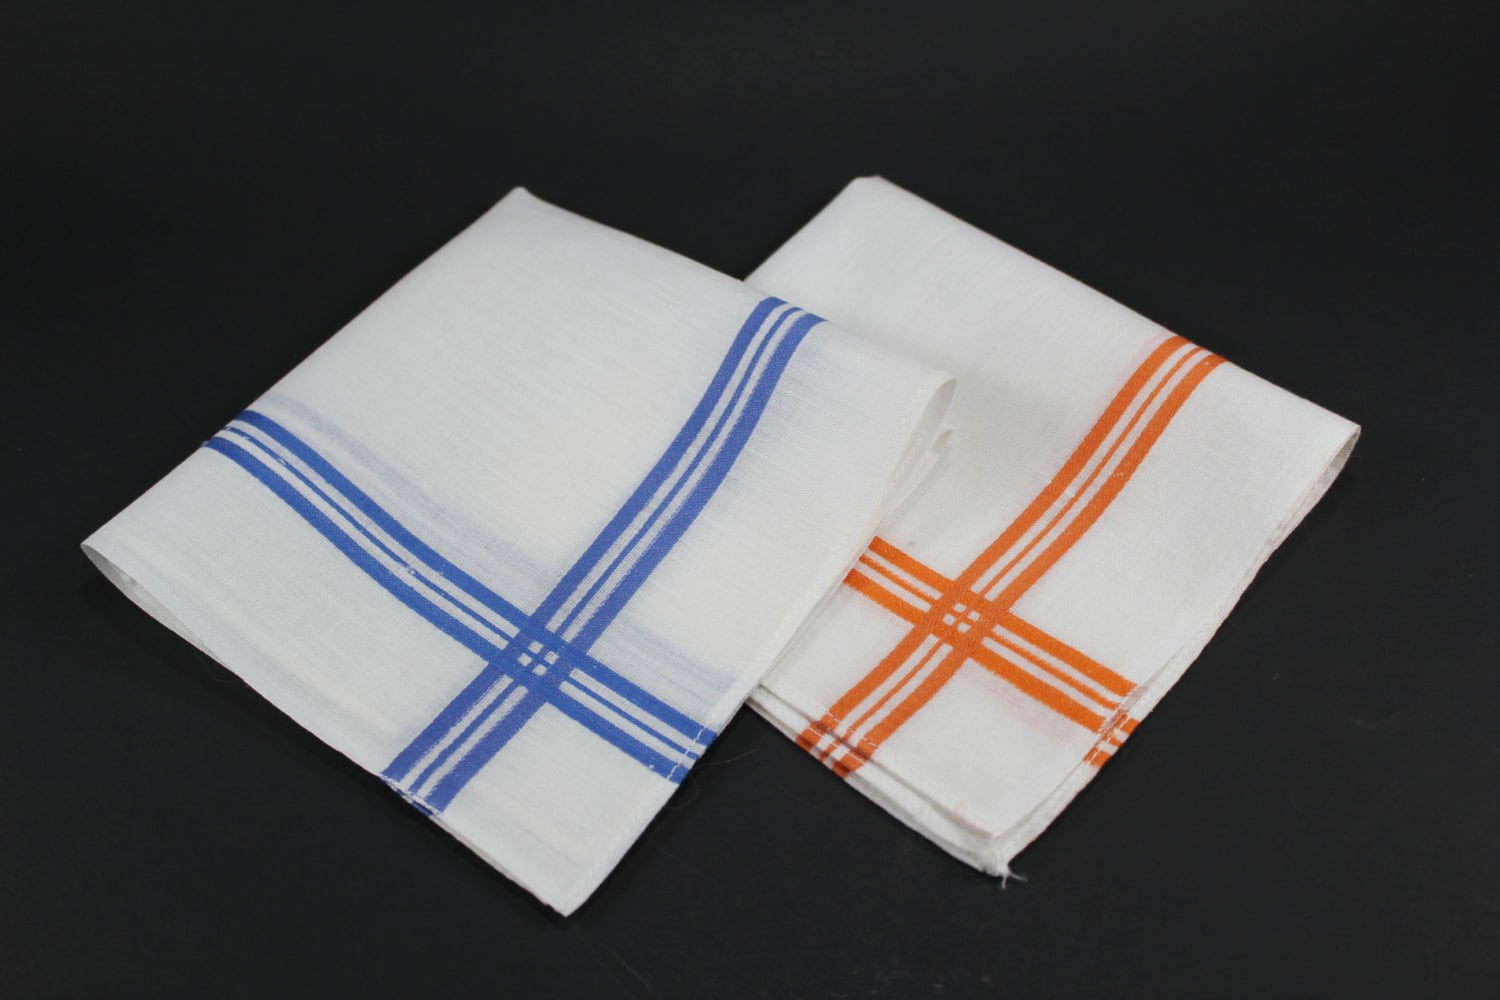 Thus, you can get a handkerchief for any type of outfit, whether it is for a wedding, party or any other occasion. Moreover, the handkerchief comes in various materials like cotton, polyester, satin, silk, etc. The texture and look of each category of the handkerchief are different.